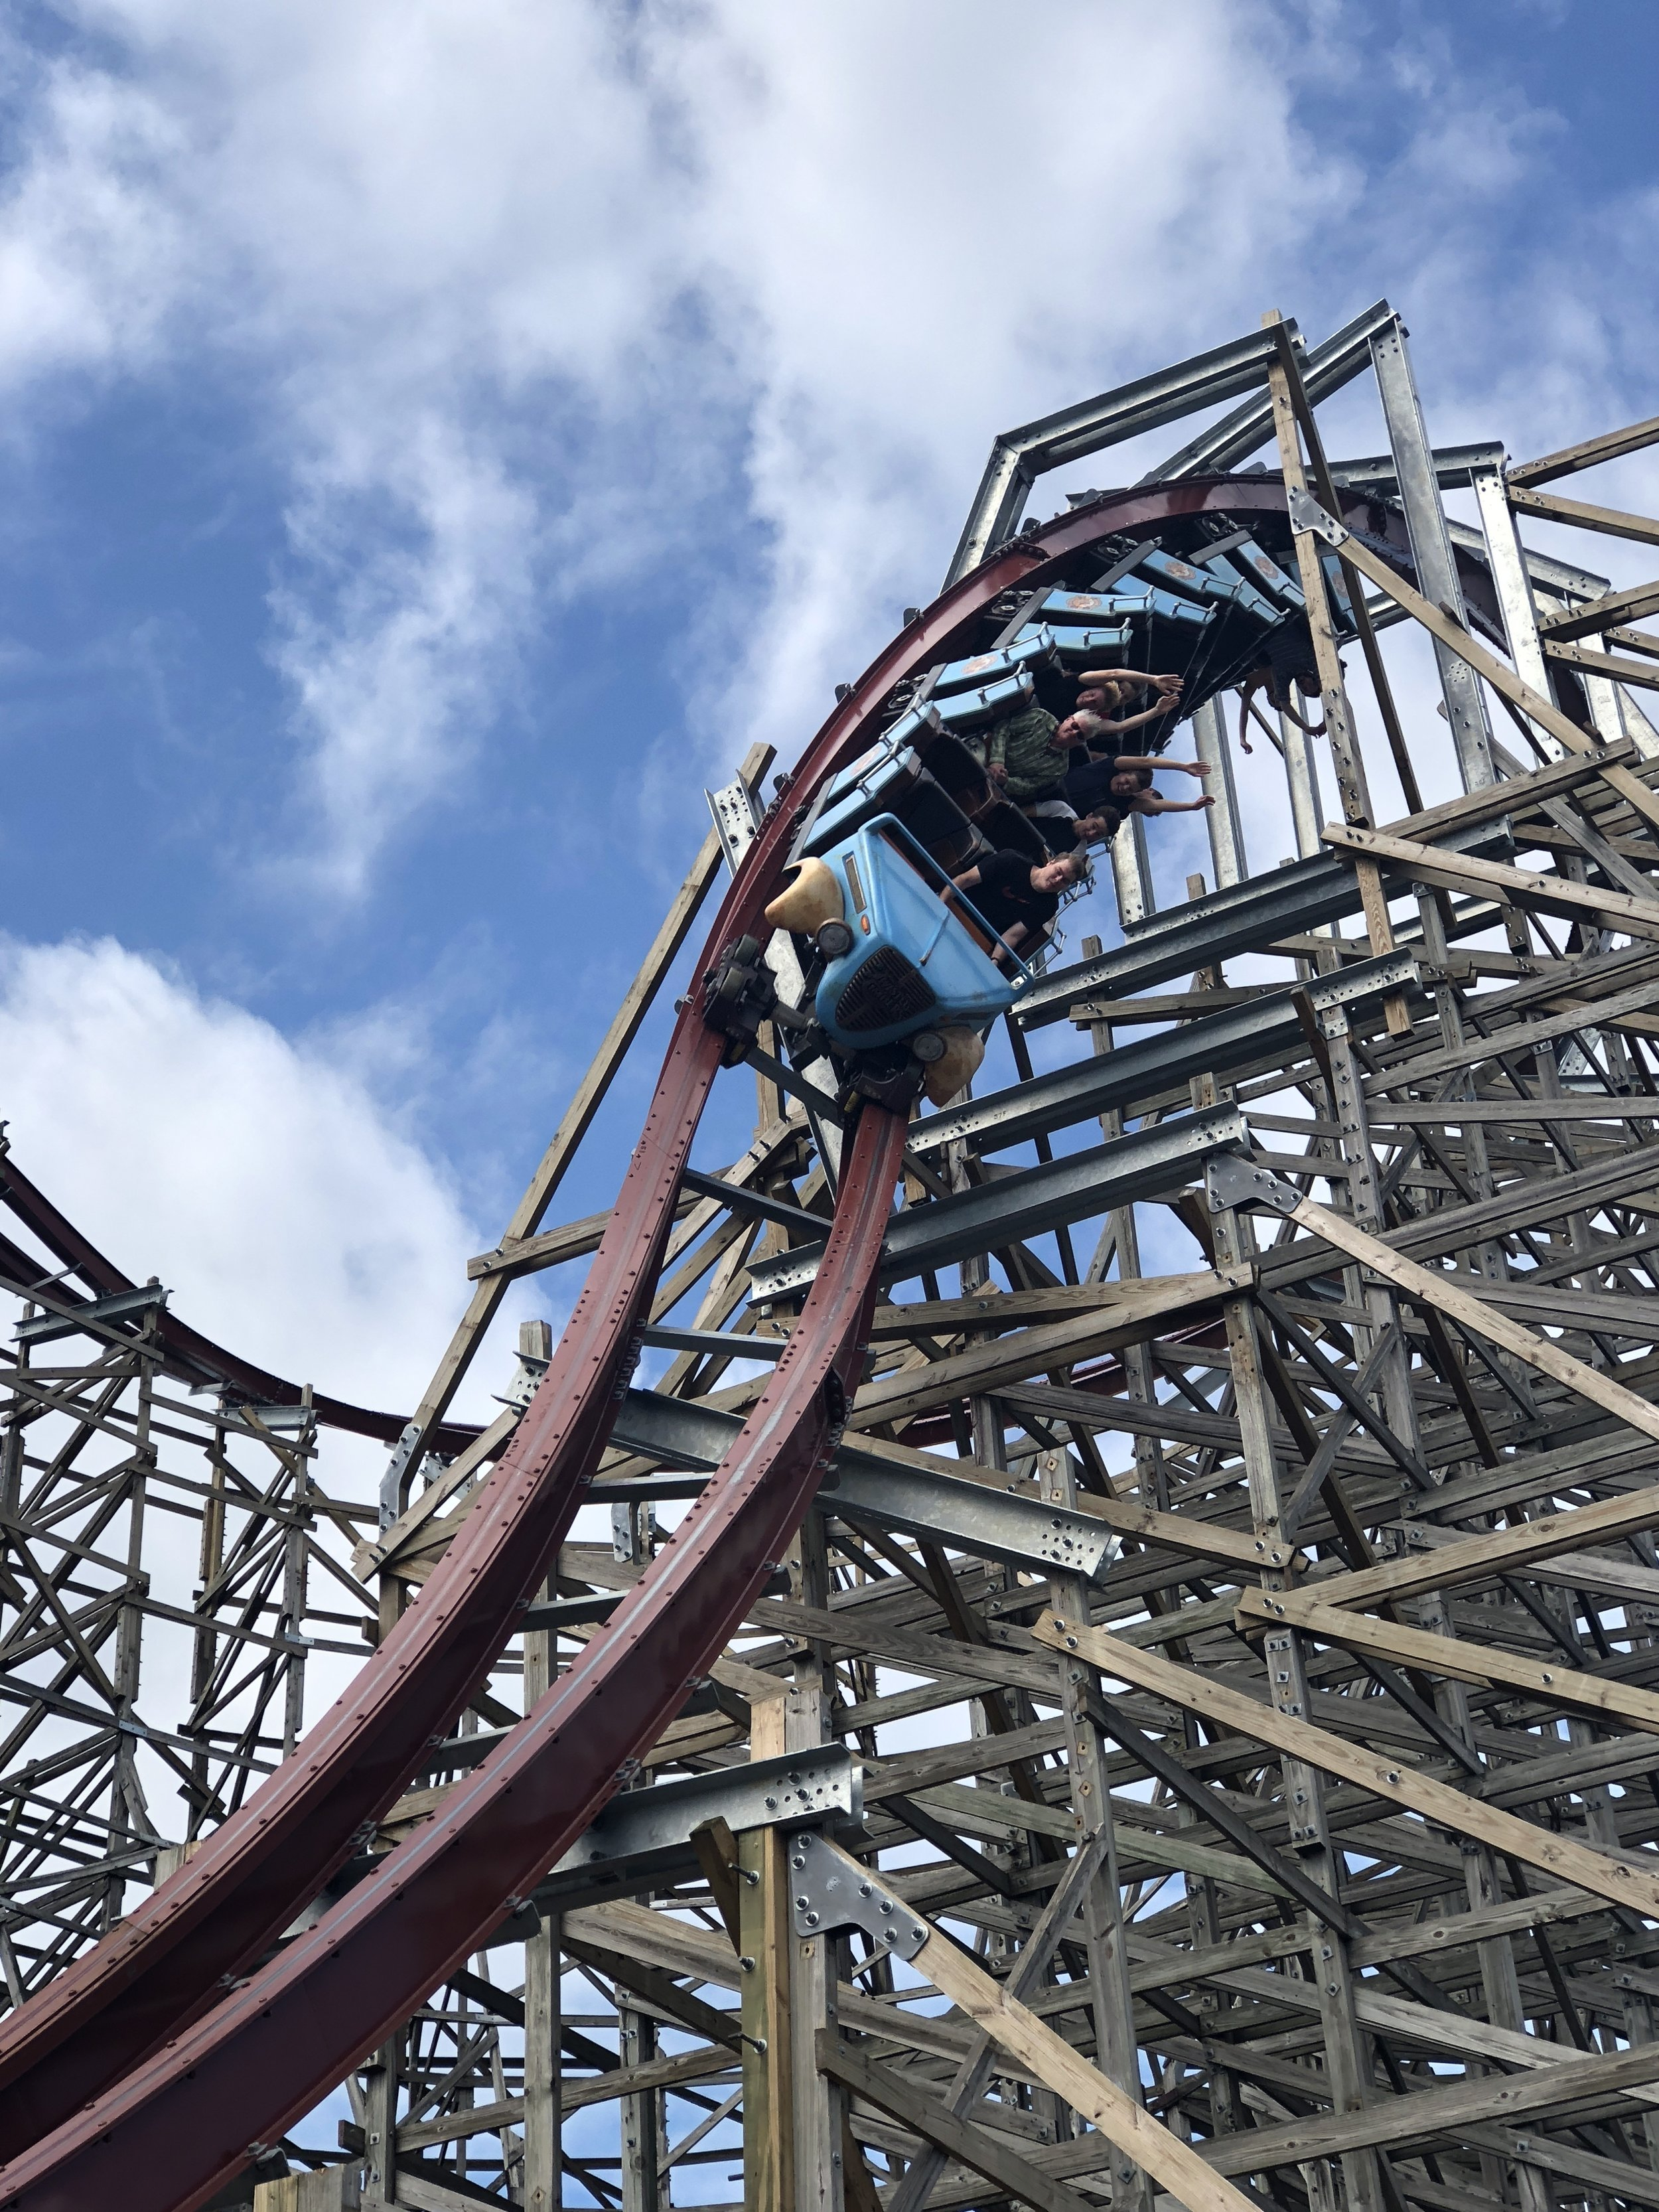 This is the ridiculously fun first drop on Twisted Timbers. The rest of the ride is just as delightfully nuts!